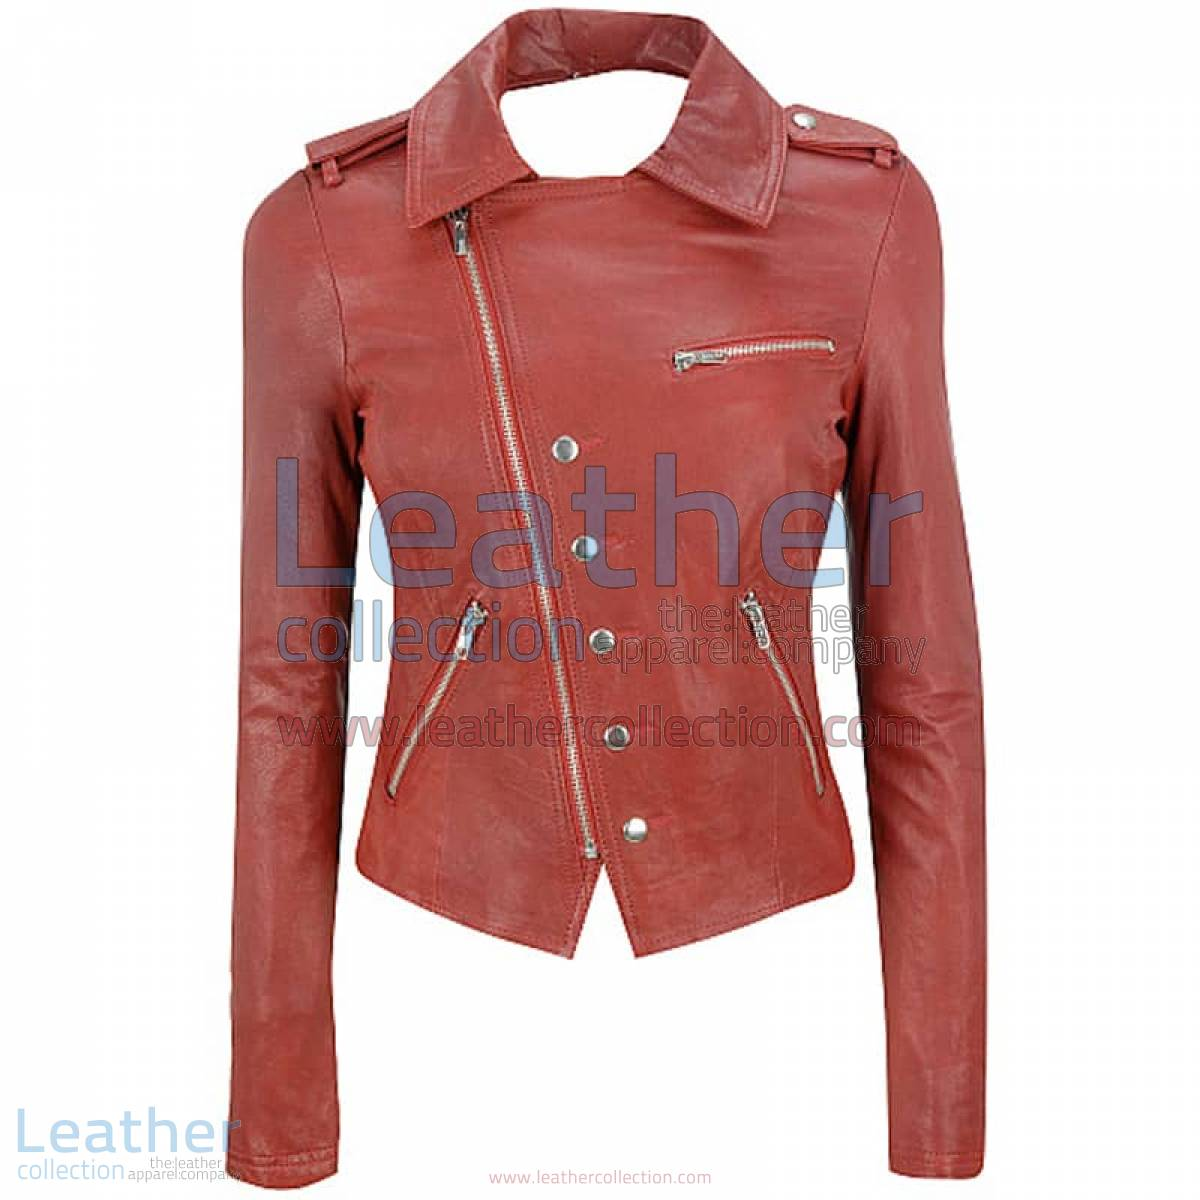 Cutaway Asymmetrical Leather Jacket Womens